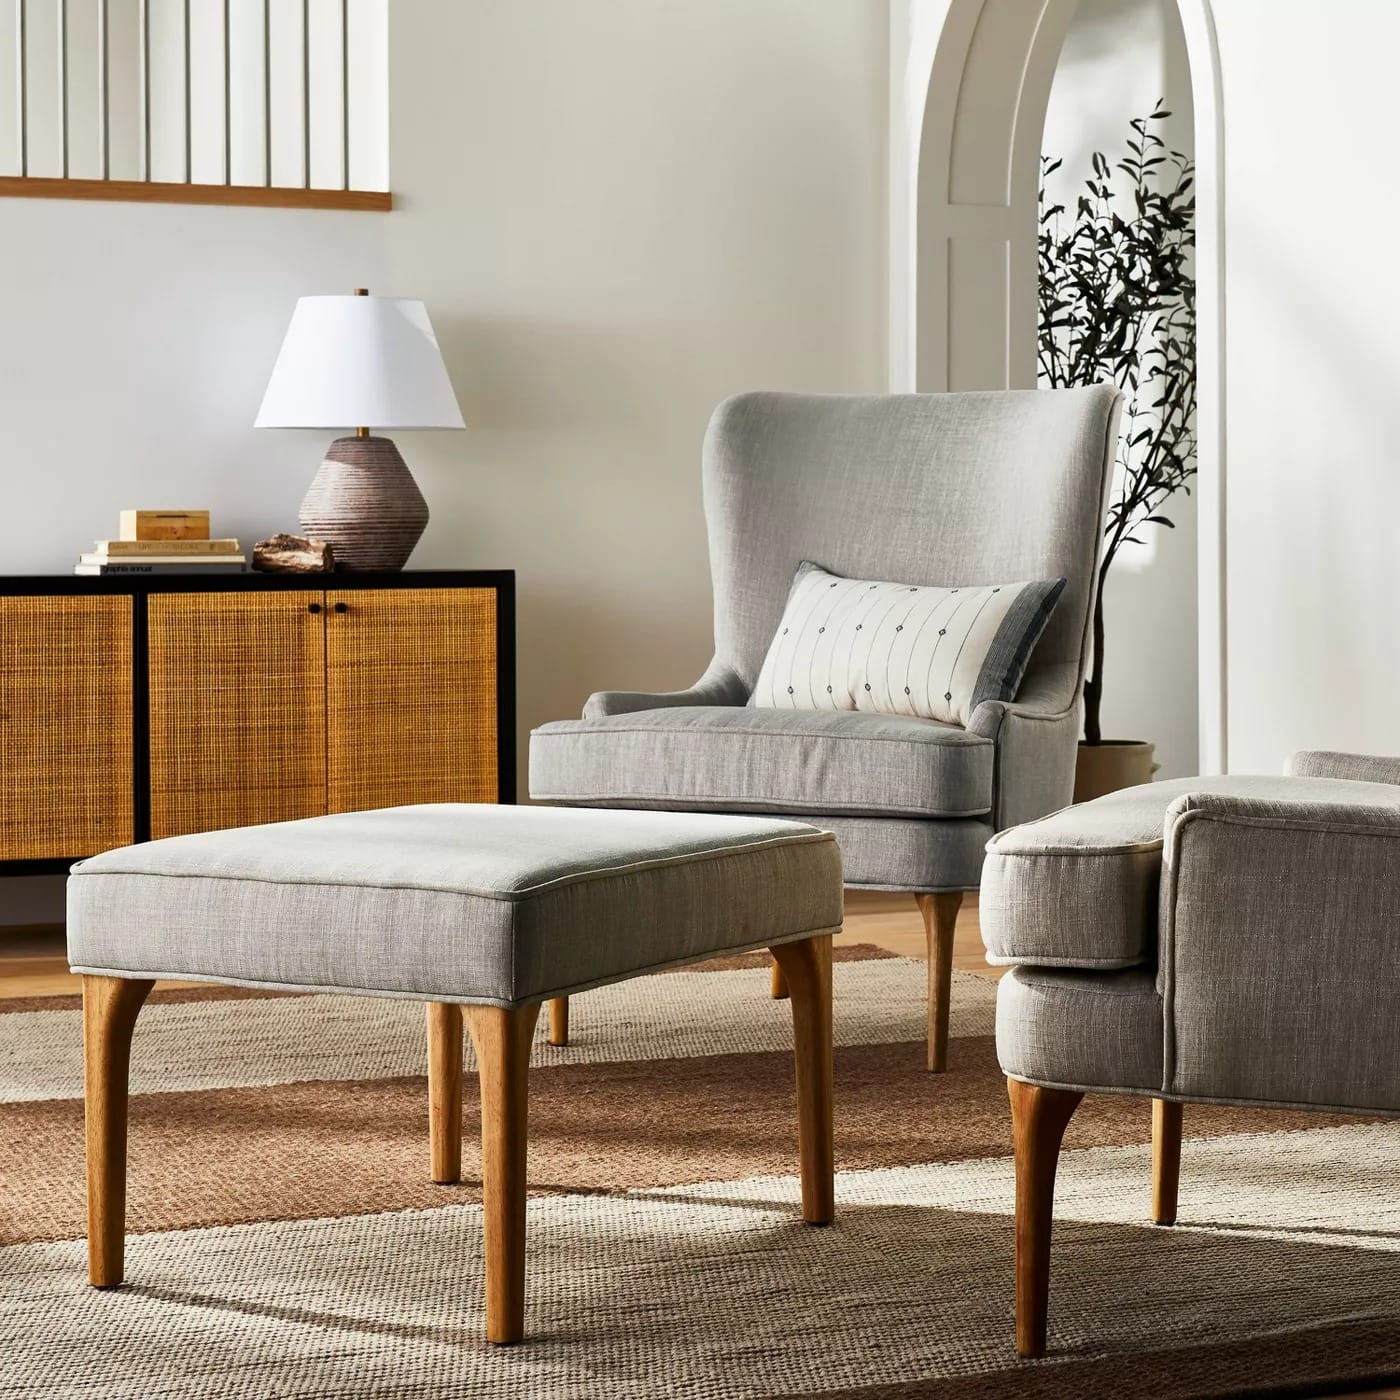 Threshold Cheswold Ottoman $49.50, Wingback Chair $165 Or Less w/ Target Circle + 2.5% Slickdeals Cashback (PC Req'd) + Free S/H